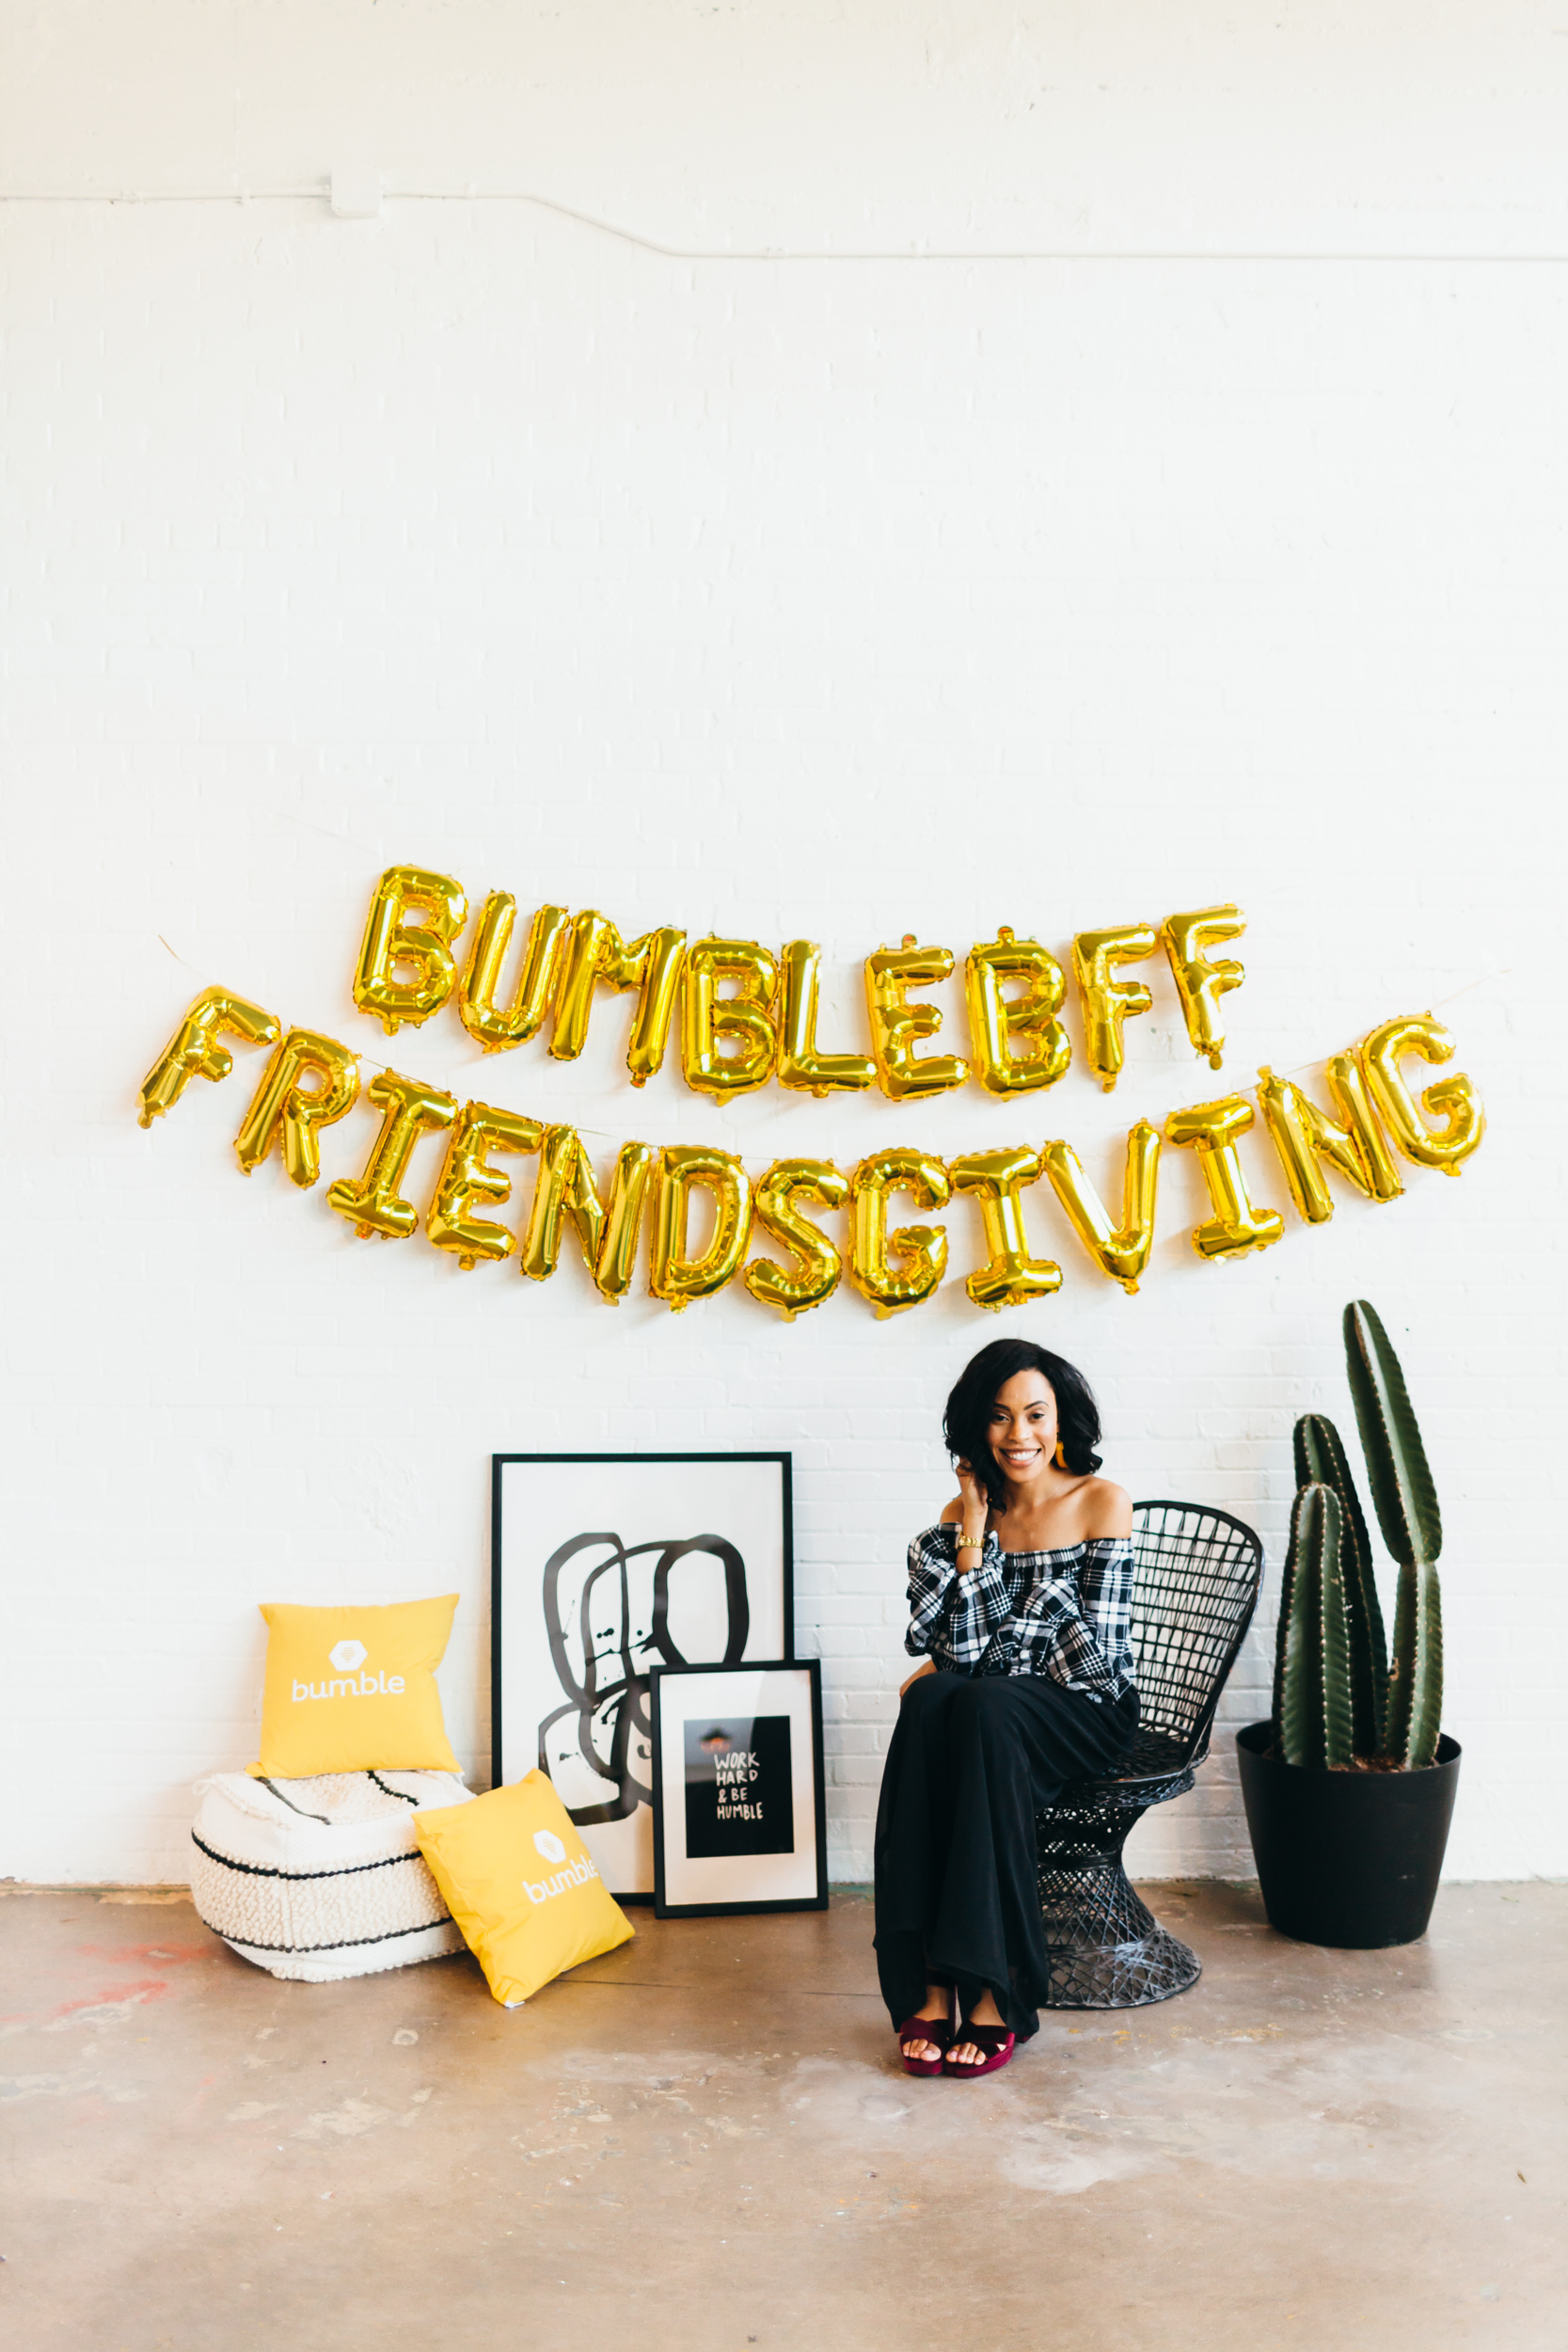 bumble-bff-friendsgiving-@sheinthemaking-3255.jpg